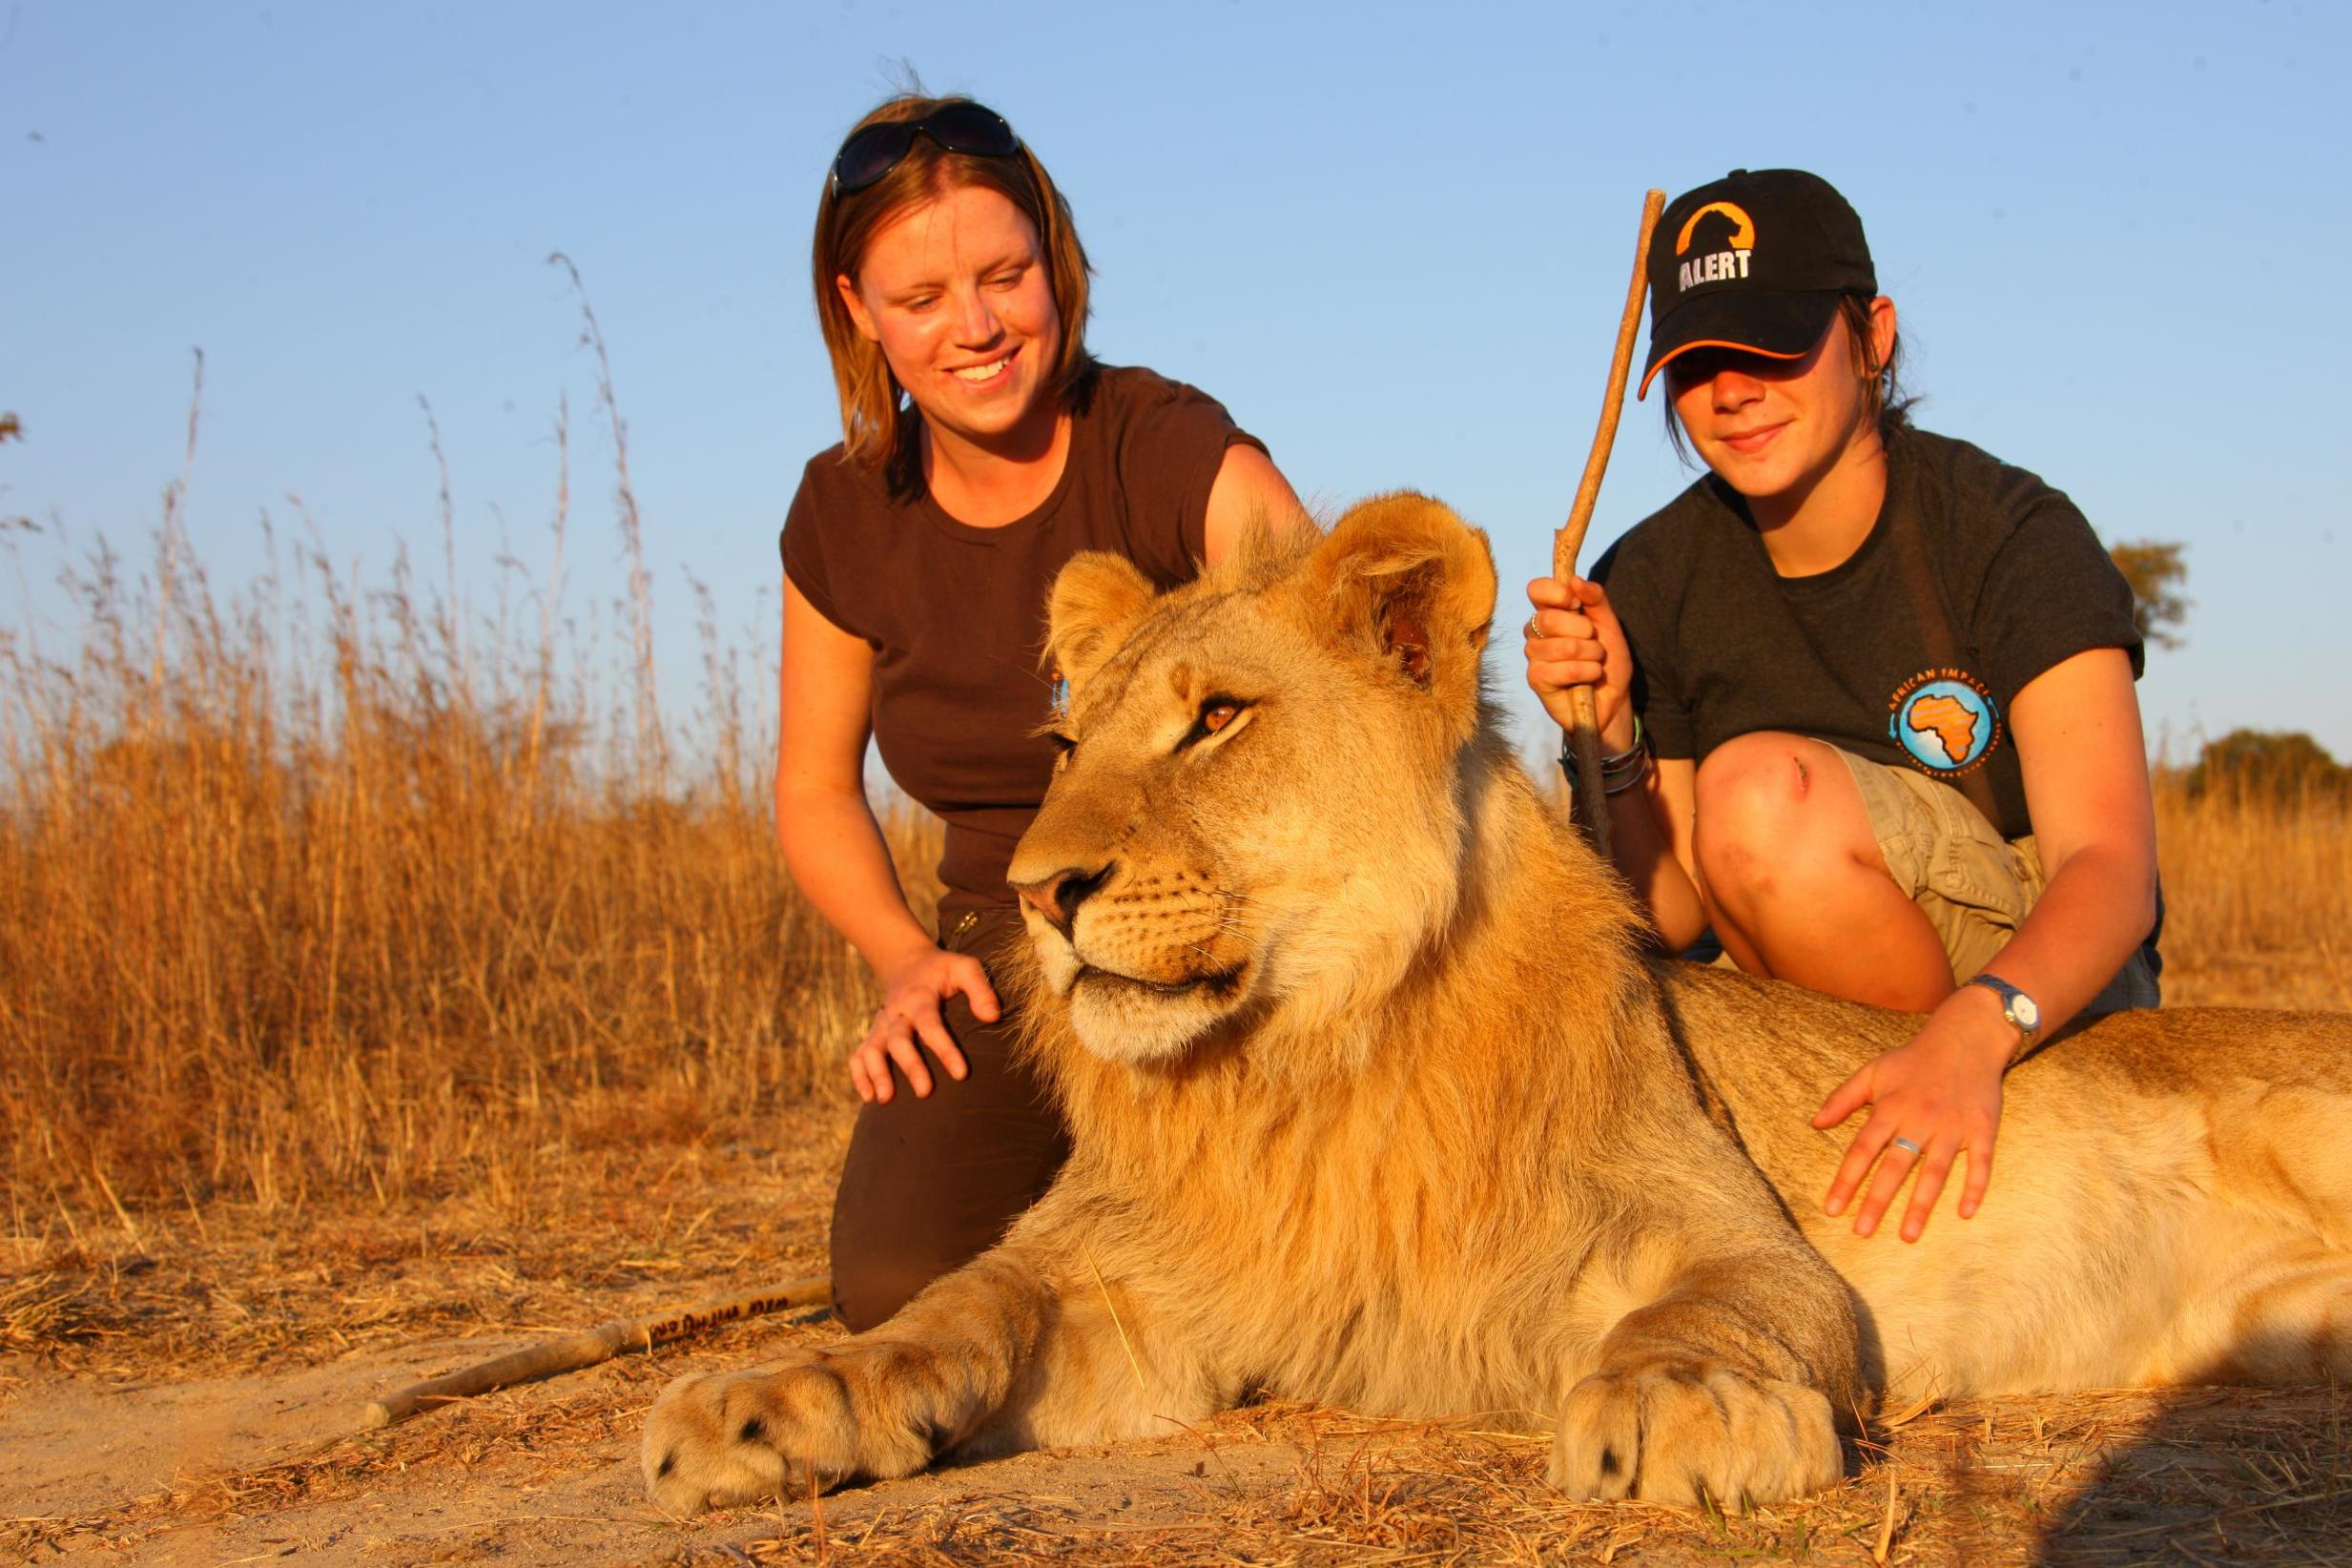 What it's like to walk with lions in Zimbabwe